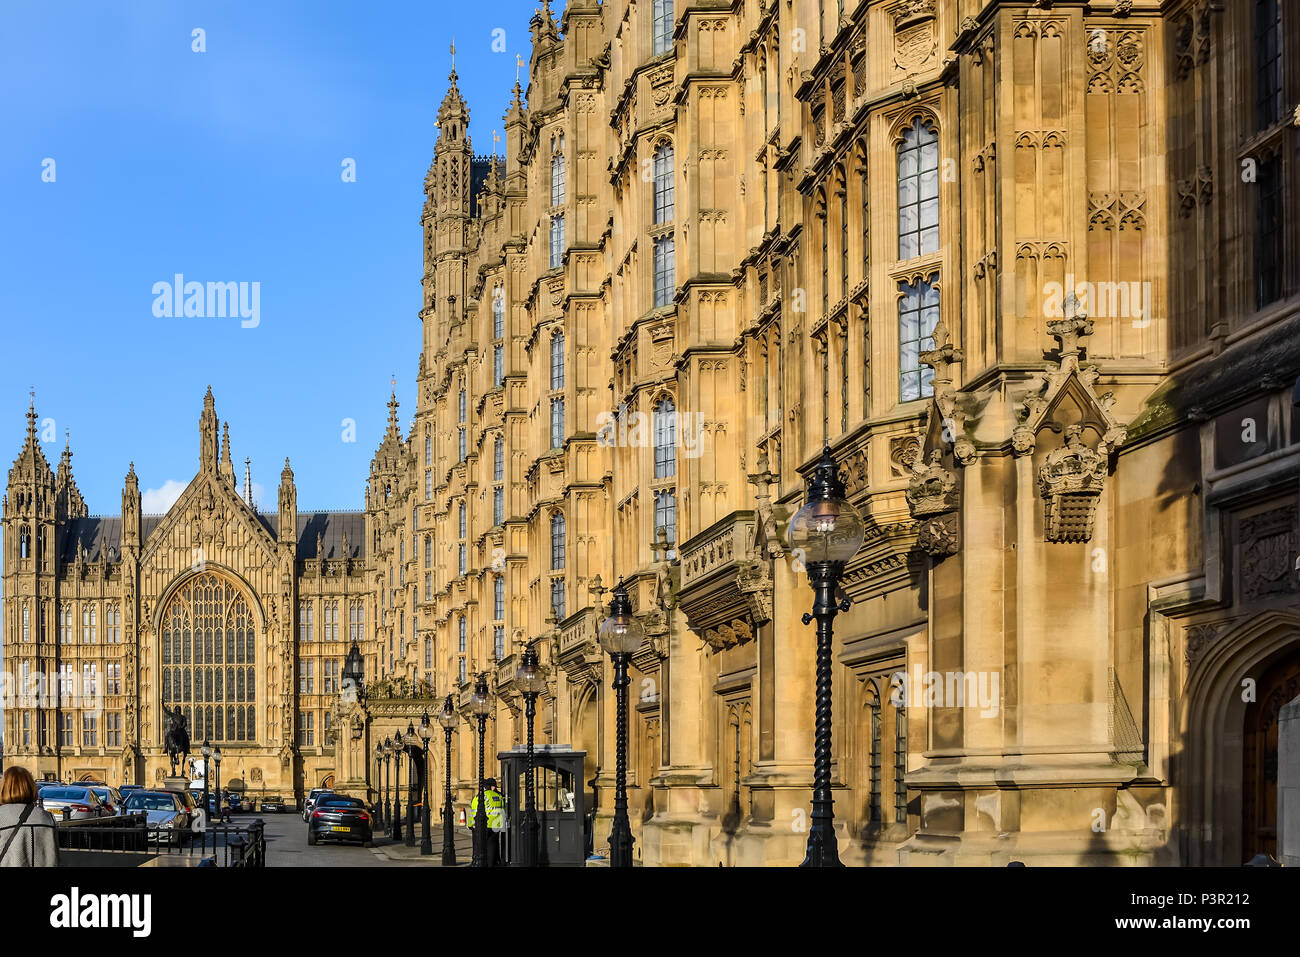 Old Palace Yard and the Victorian Gothic Palace of Westminster, with the statue of Richard Coeur de Lion in the middle and The Peers' Entrance on the  - Stock Image